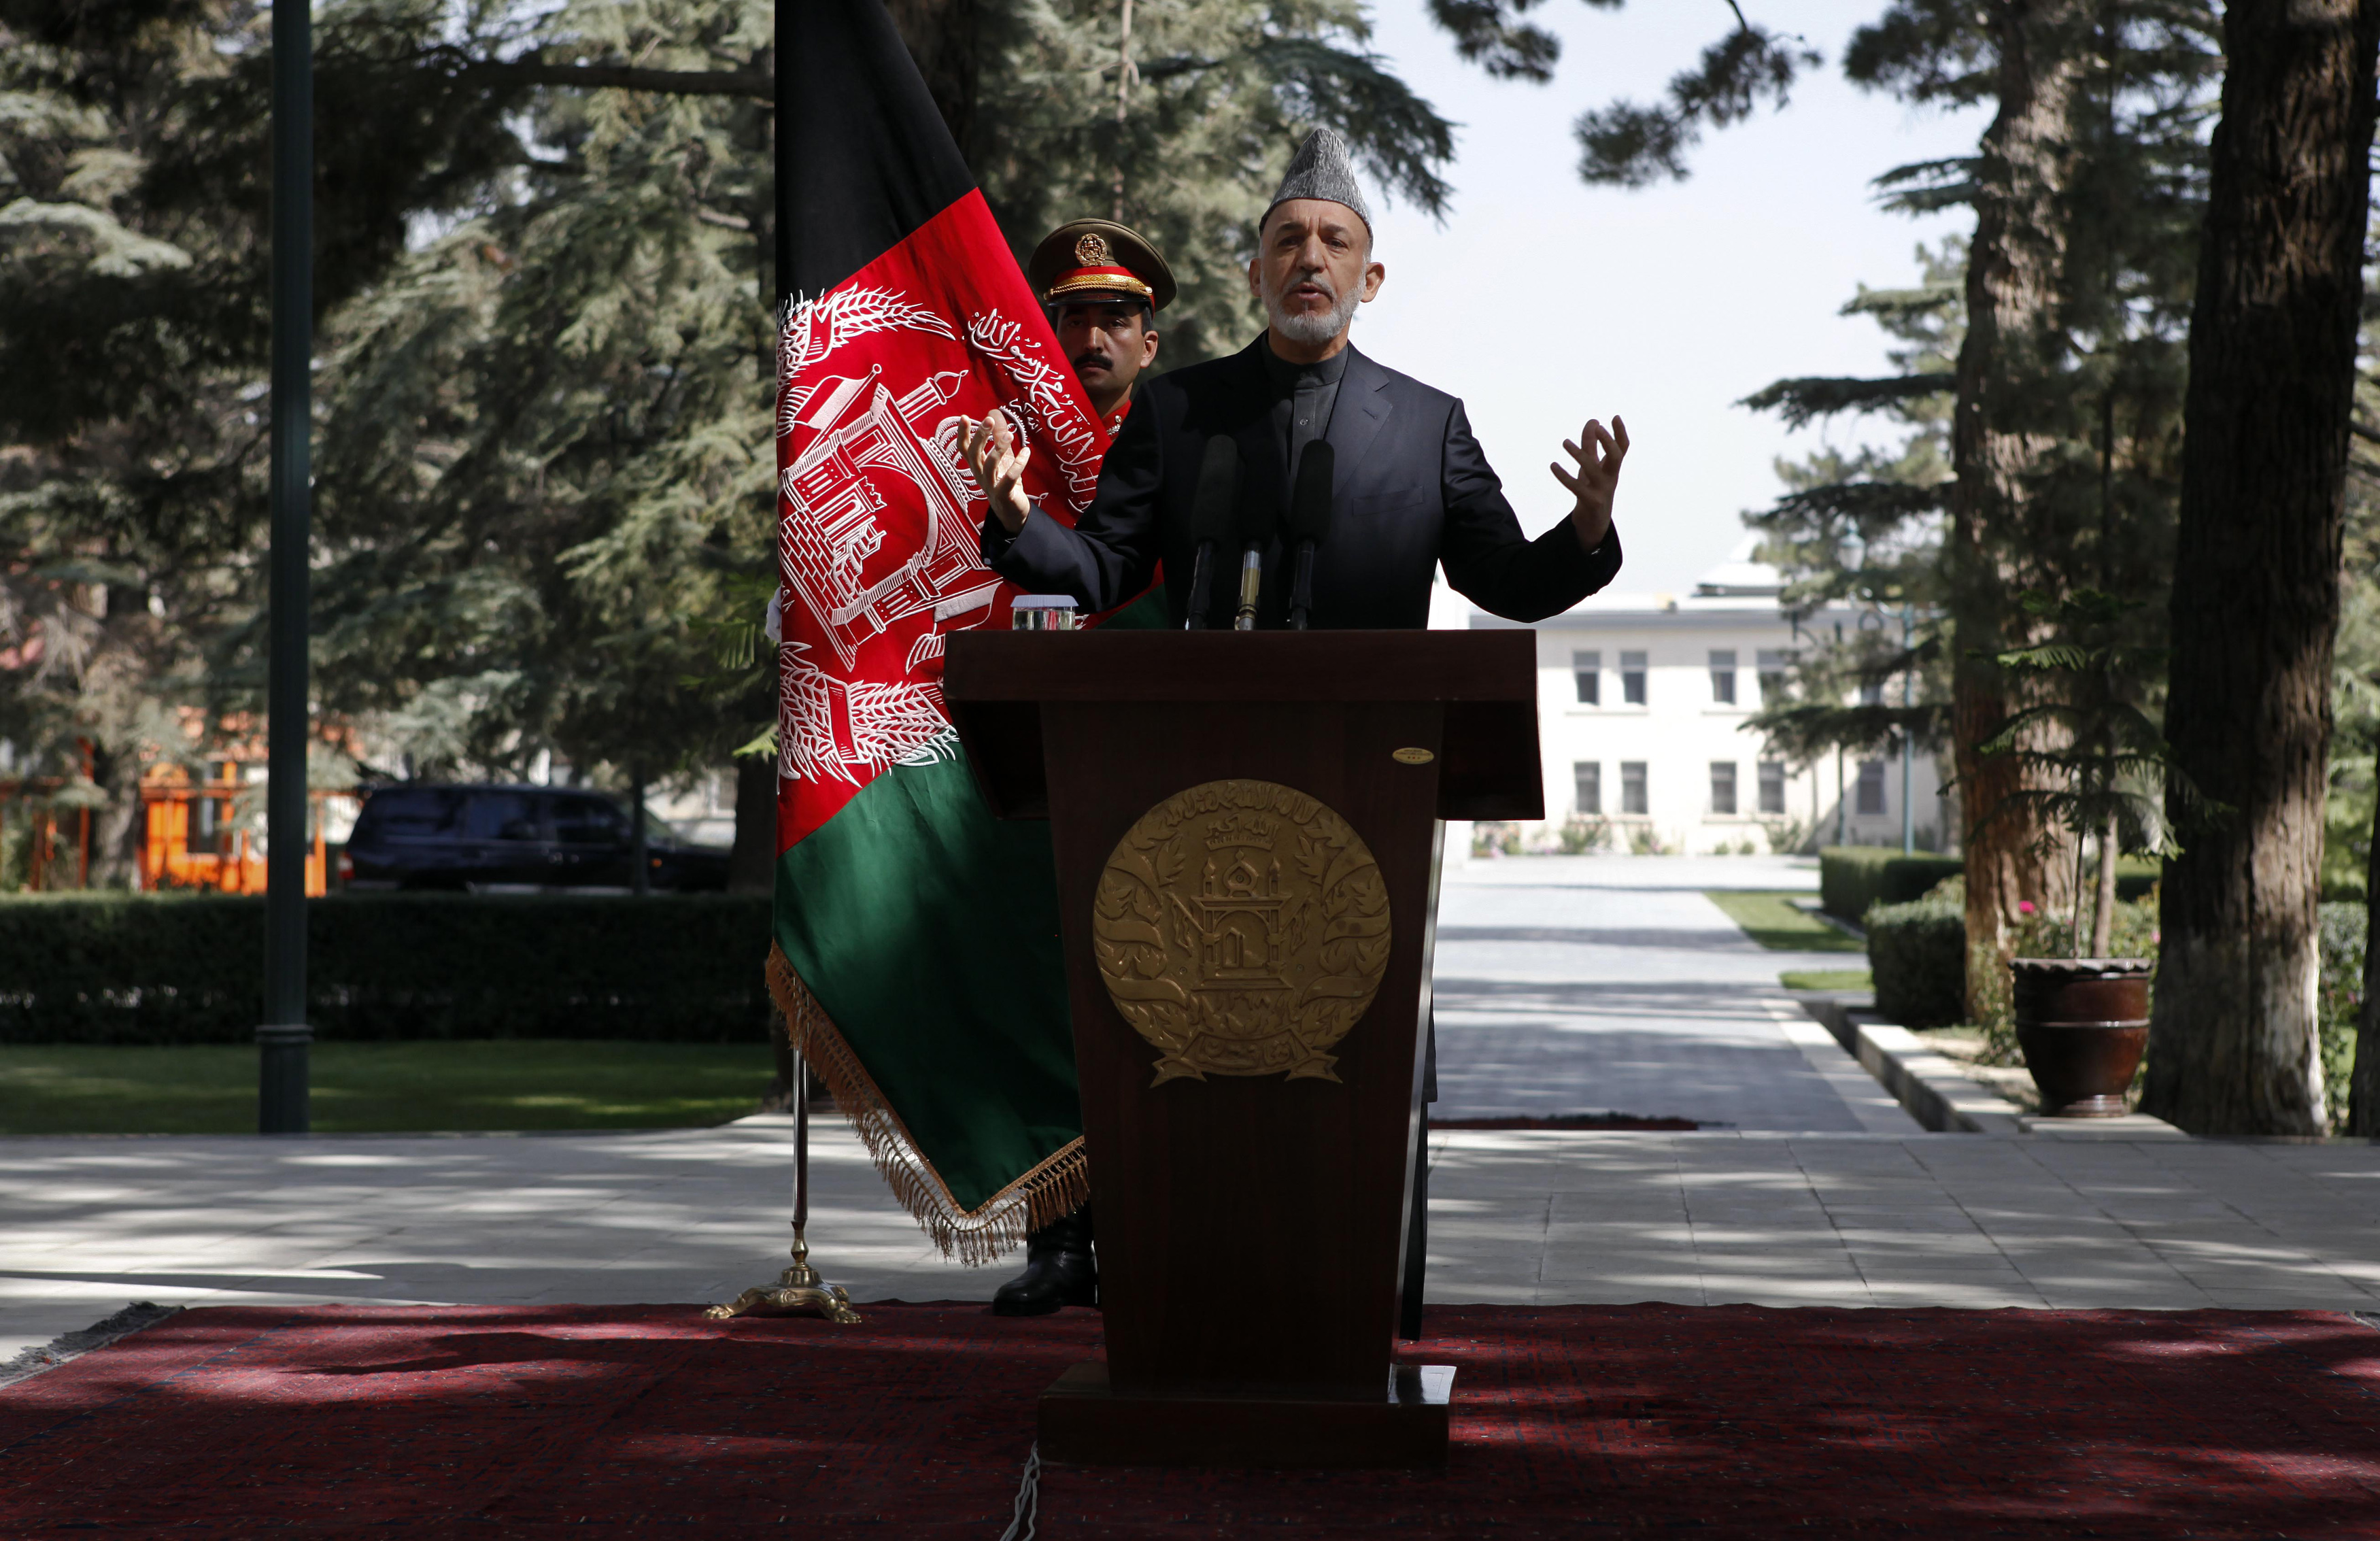 Afghanistan's President Hamid Karzai speaks during a news conference in Kabul October 4, 2012. Karzai said on Thursday that presidential elections in 2014 when his term will end would be on time, despite a continuing insurgency and concerns about a simultaneous NATO combat troop exit. REUTERS/Omar Sobhani